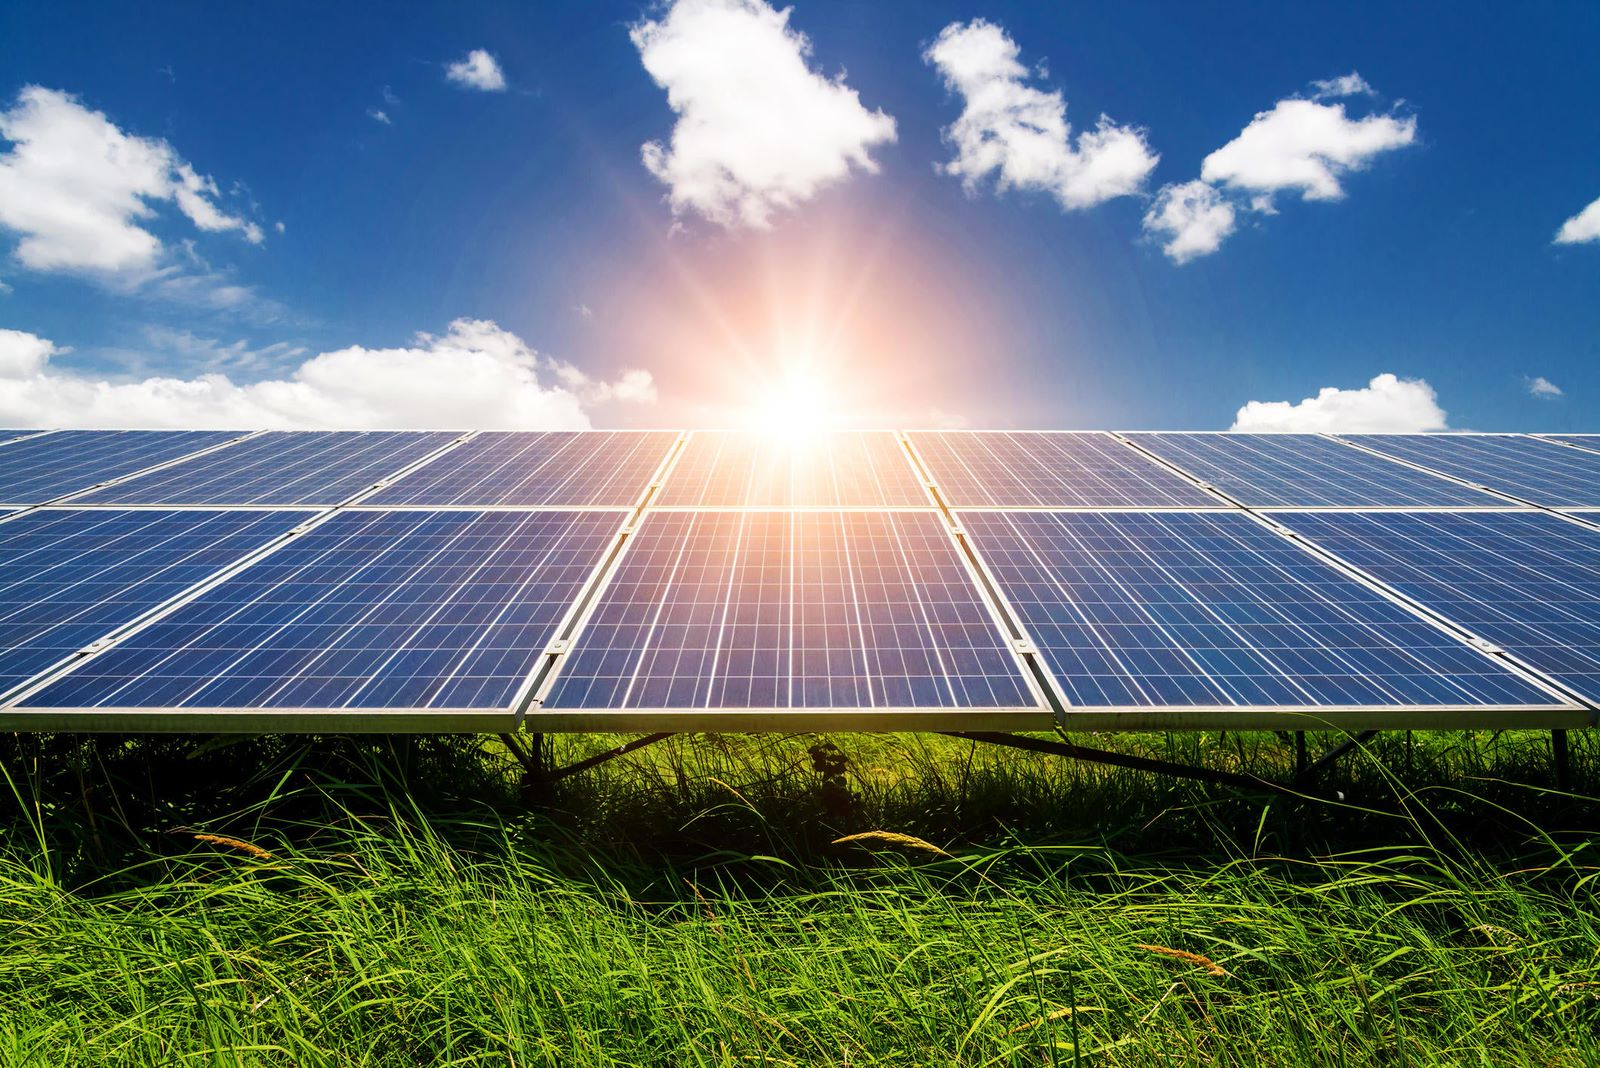 CJR Renewables awarded a contract to build a solar power plant in Portugal, Valpaços